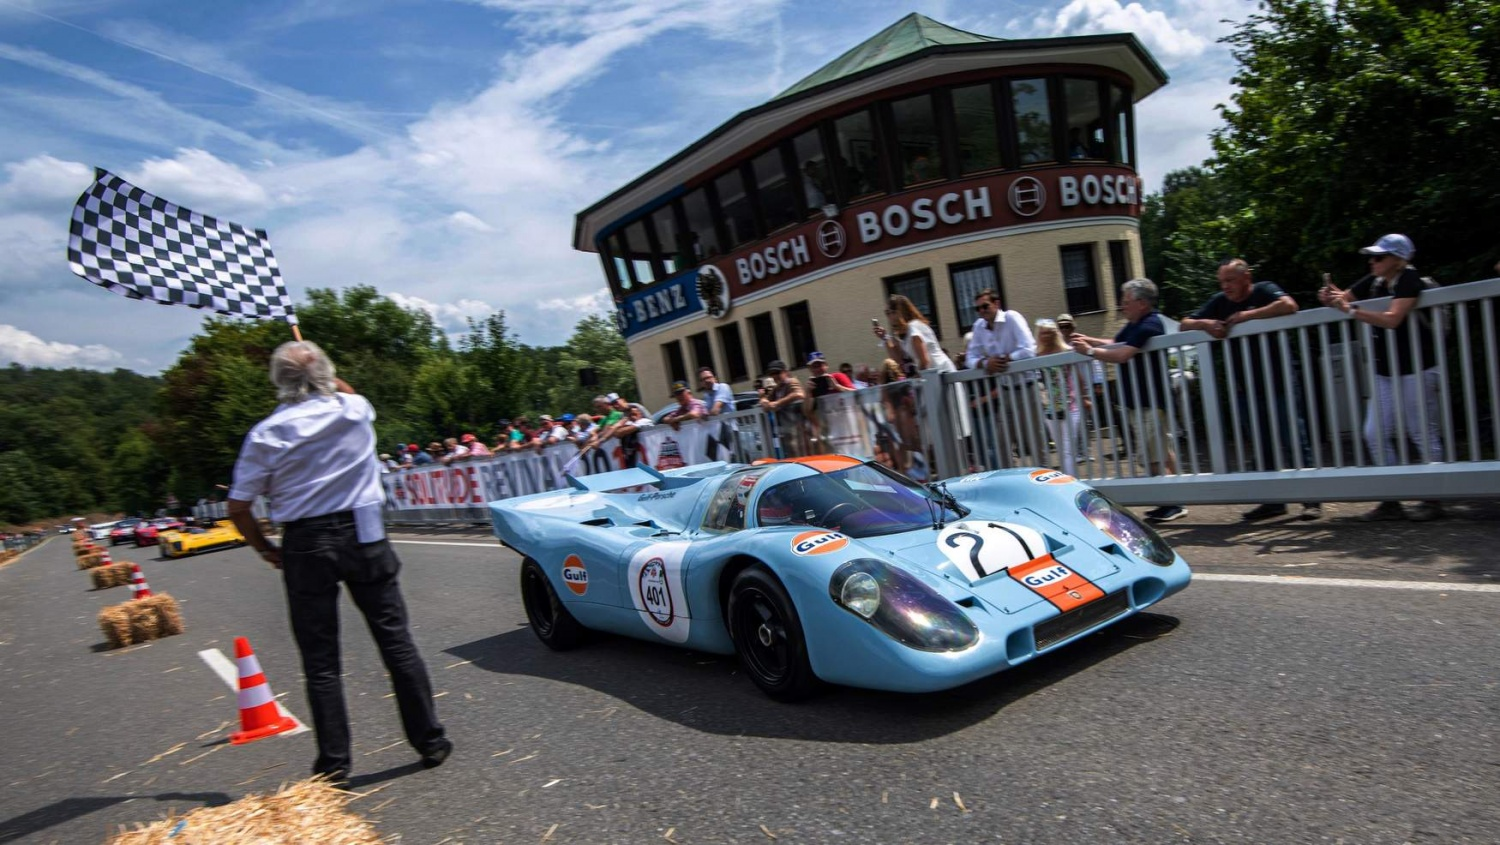 Gulf Racing and their impressive legacy in motor racing history